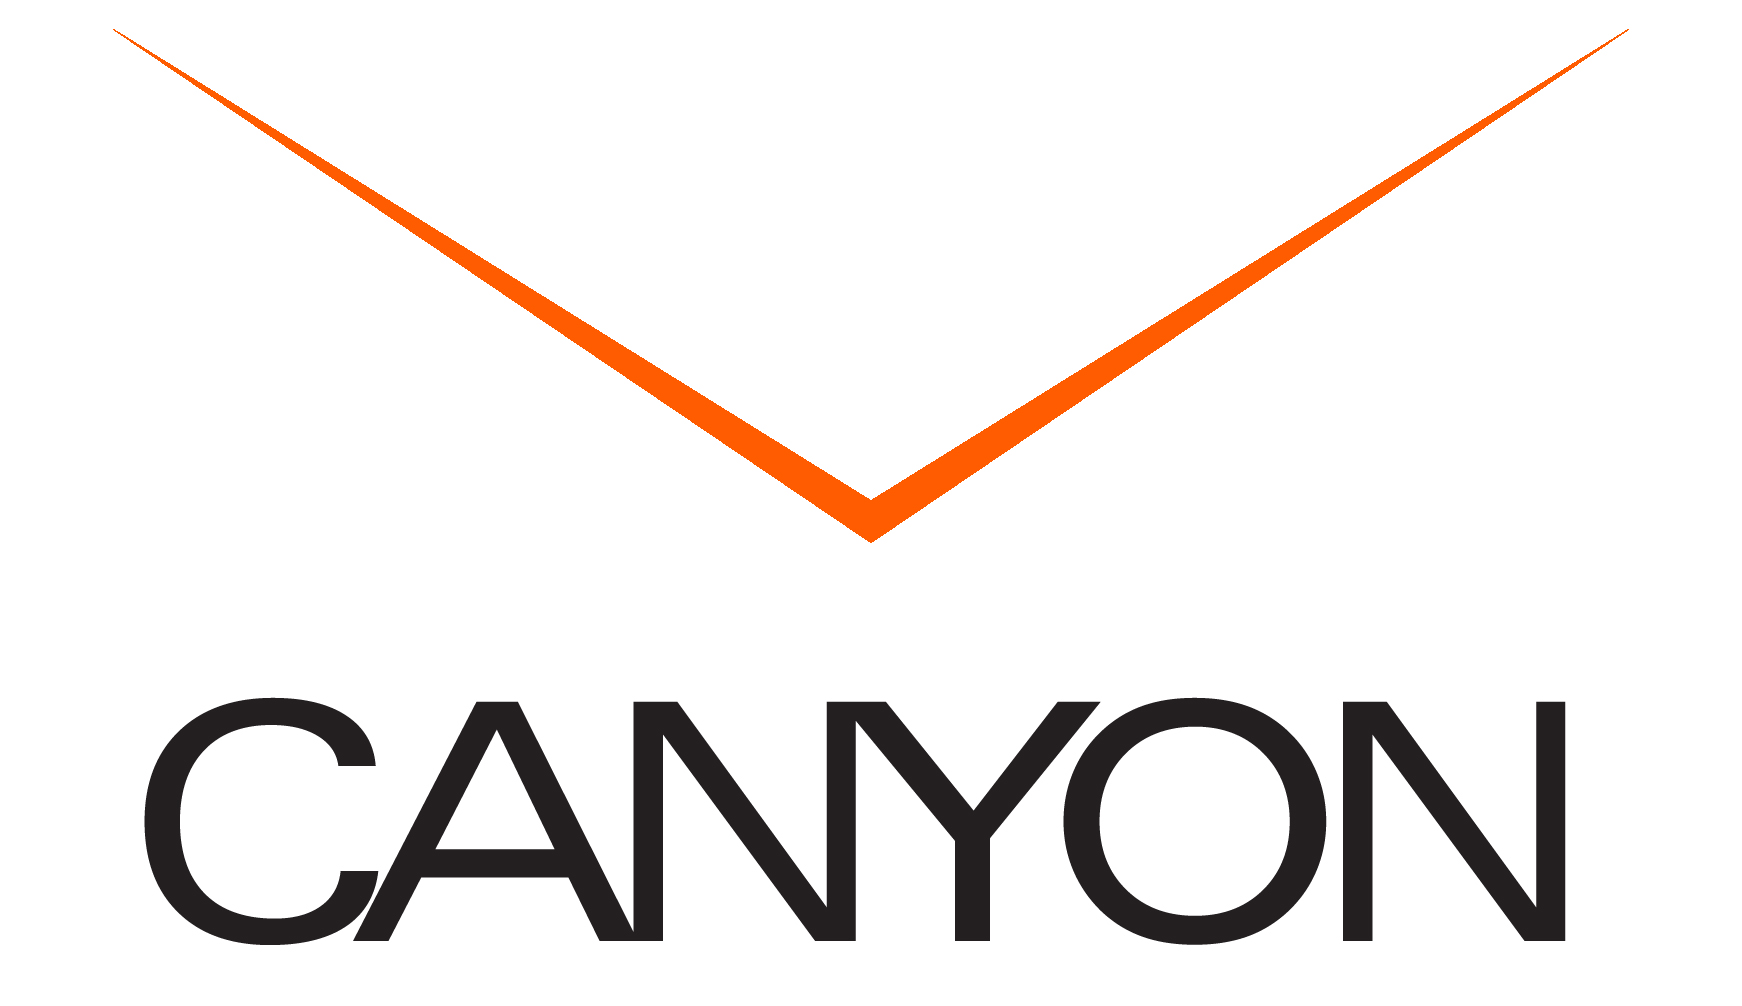 CANYON CN-WCAM23 DRIVERS DOWNLOAD